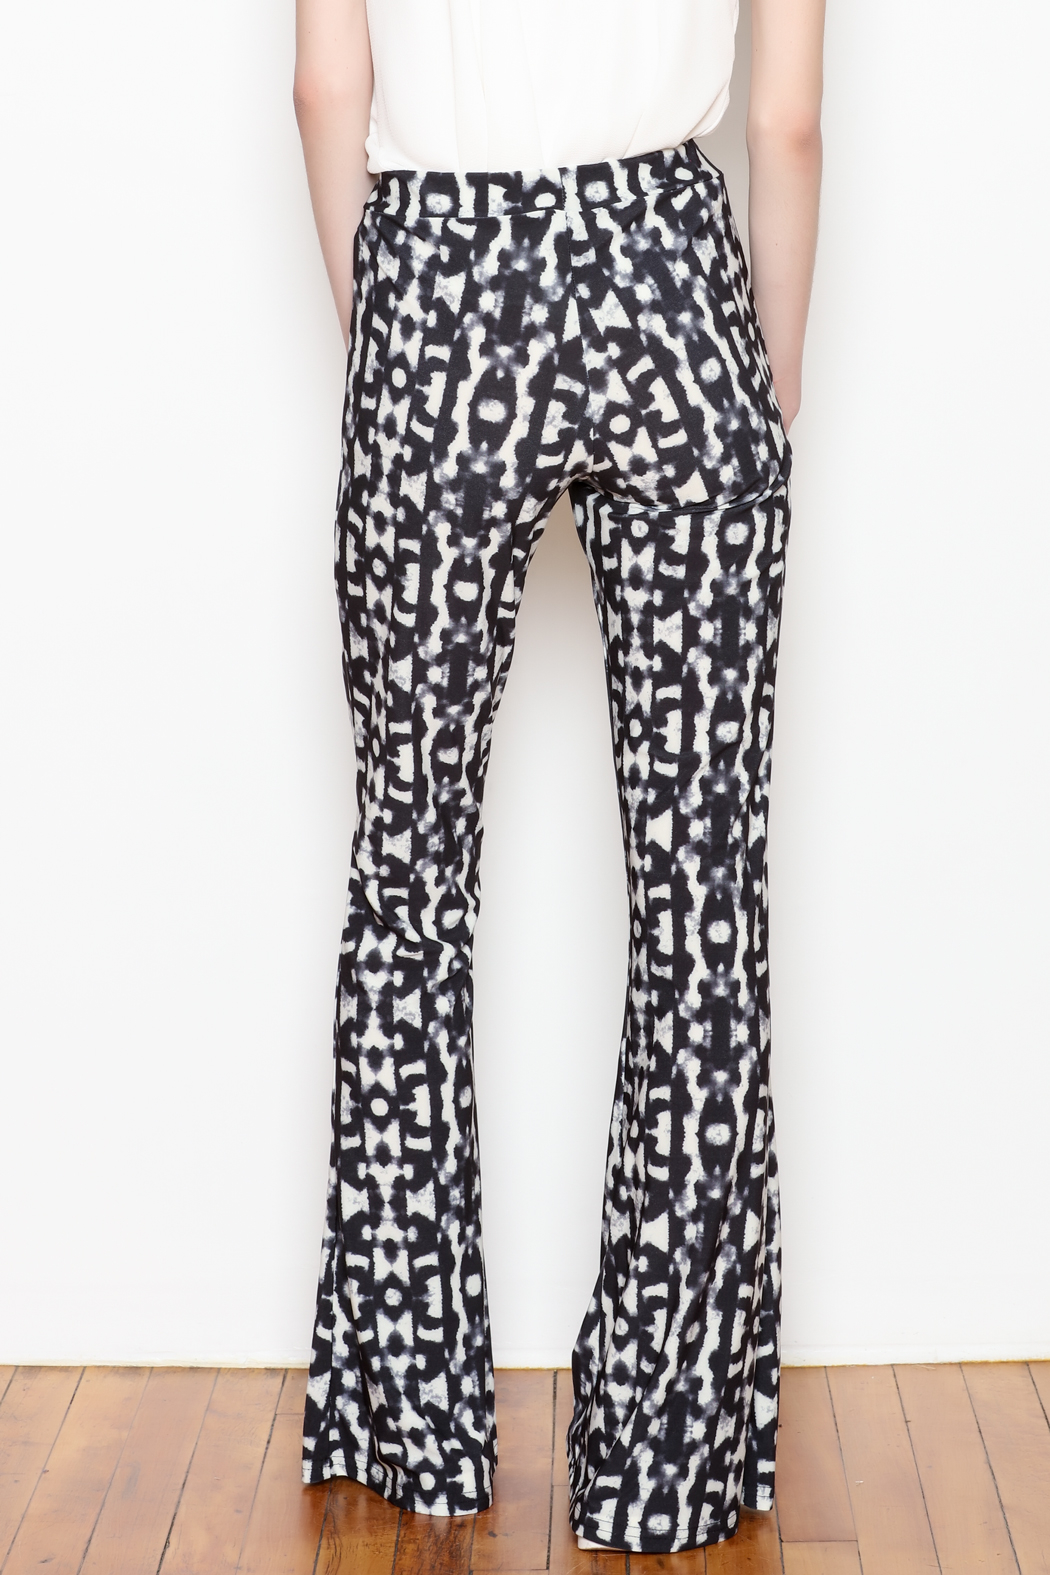 Viereck Serrano Print Flare Pull-on Pant - Front Full Image